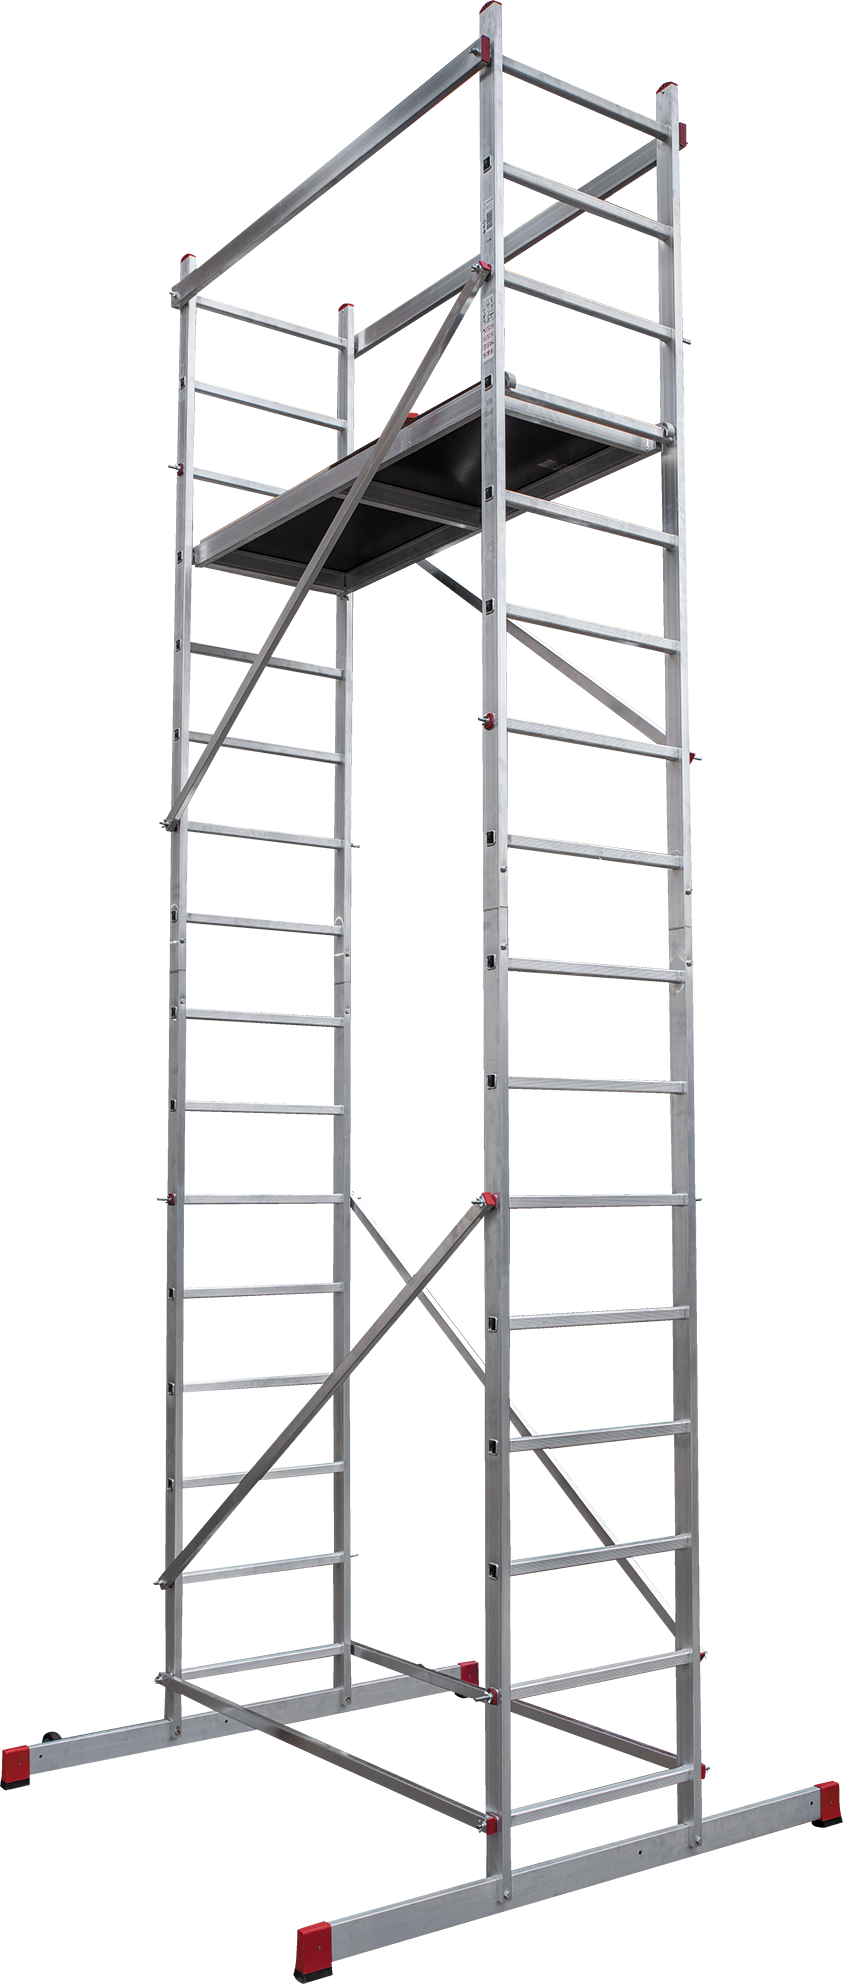 Scaffold-tower with the working height of 5 m NV 3450